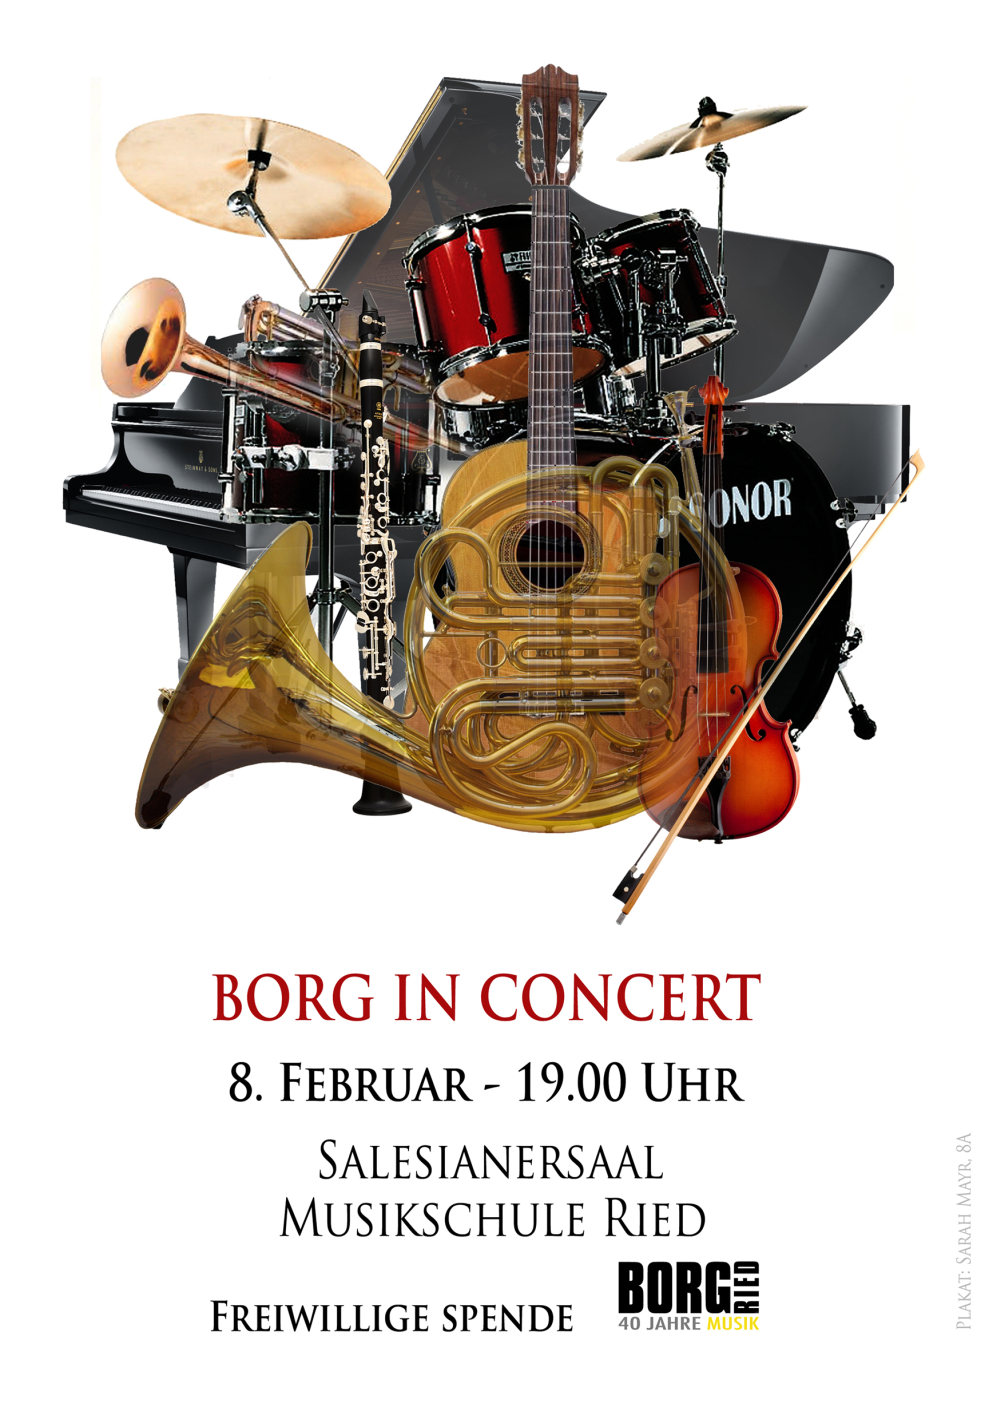 borg in concert folder a5 Kopie